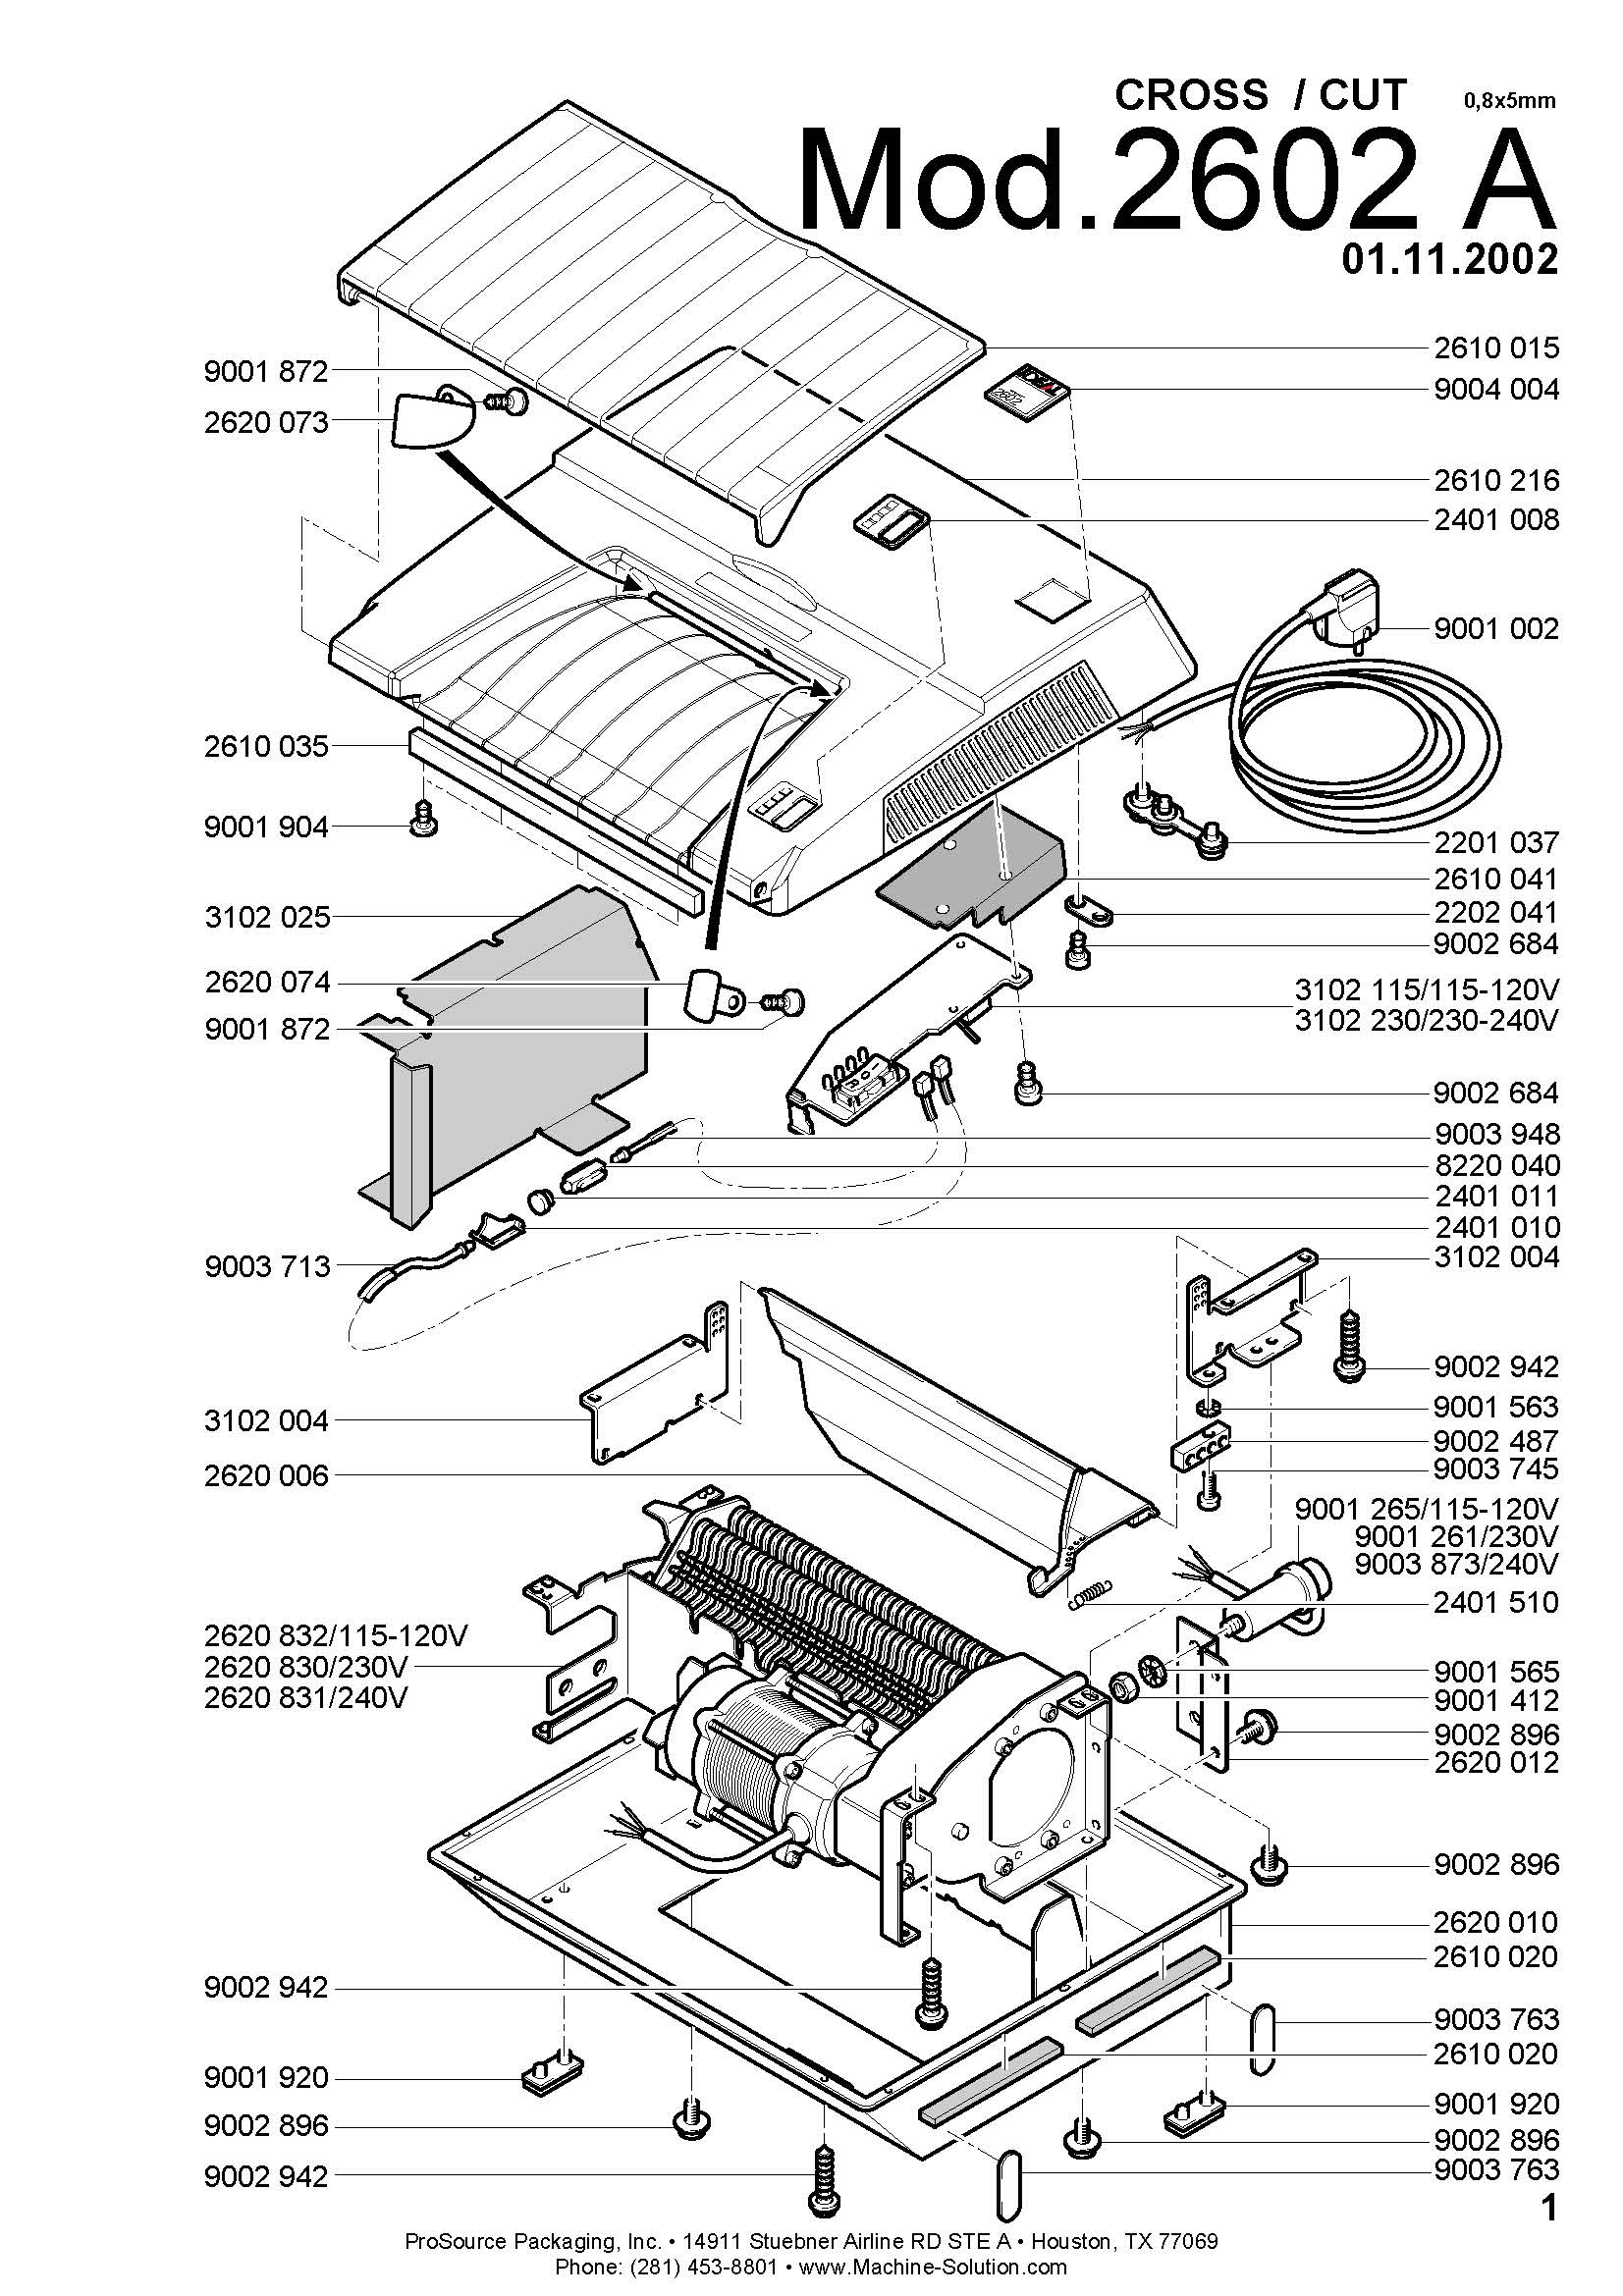 paper shredder wiring diagram wiring library parts assistant mbm destroyit 2602 a 0 8x5mm page 1 paper shredder wiring diagram